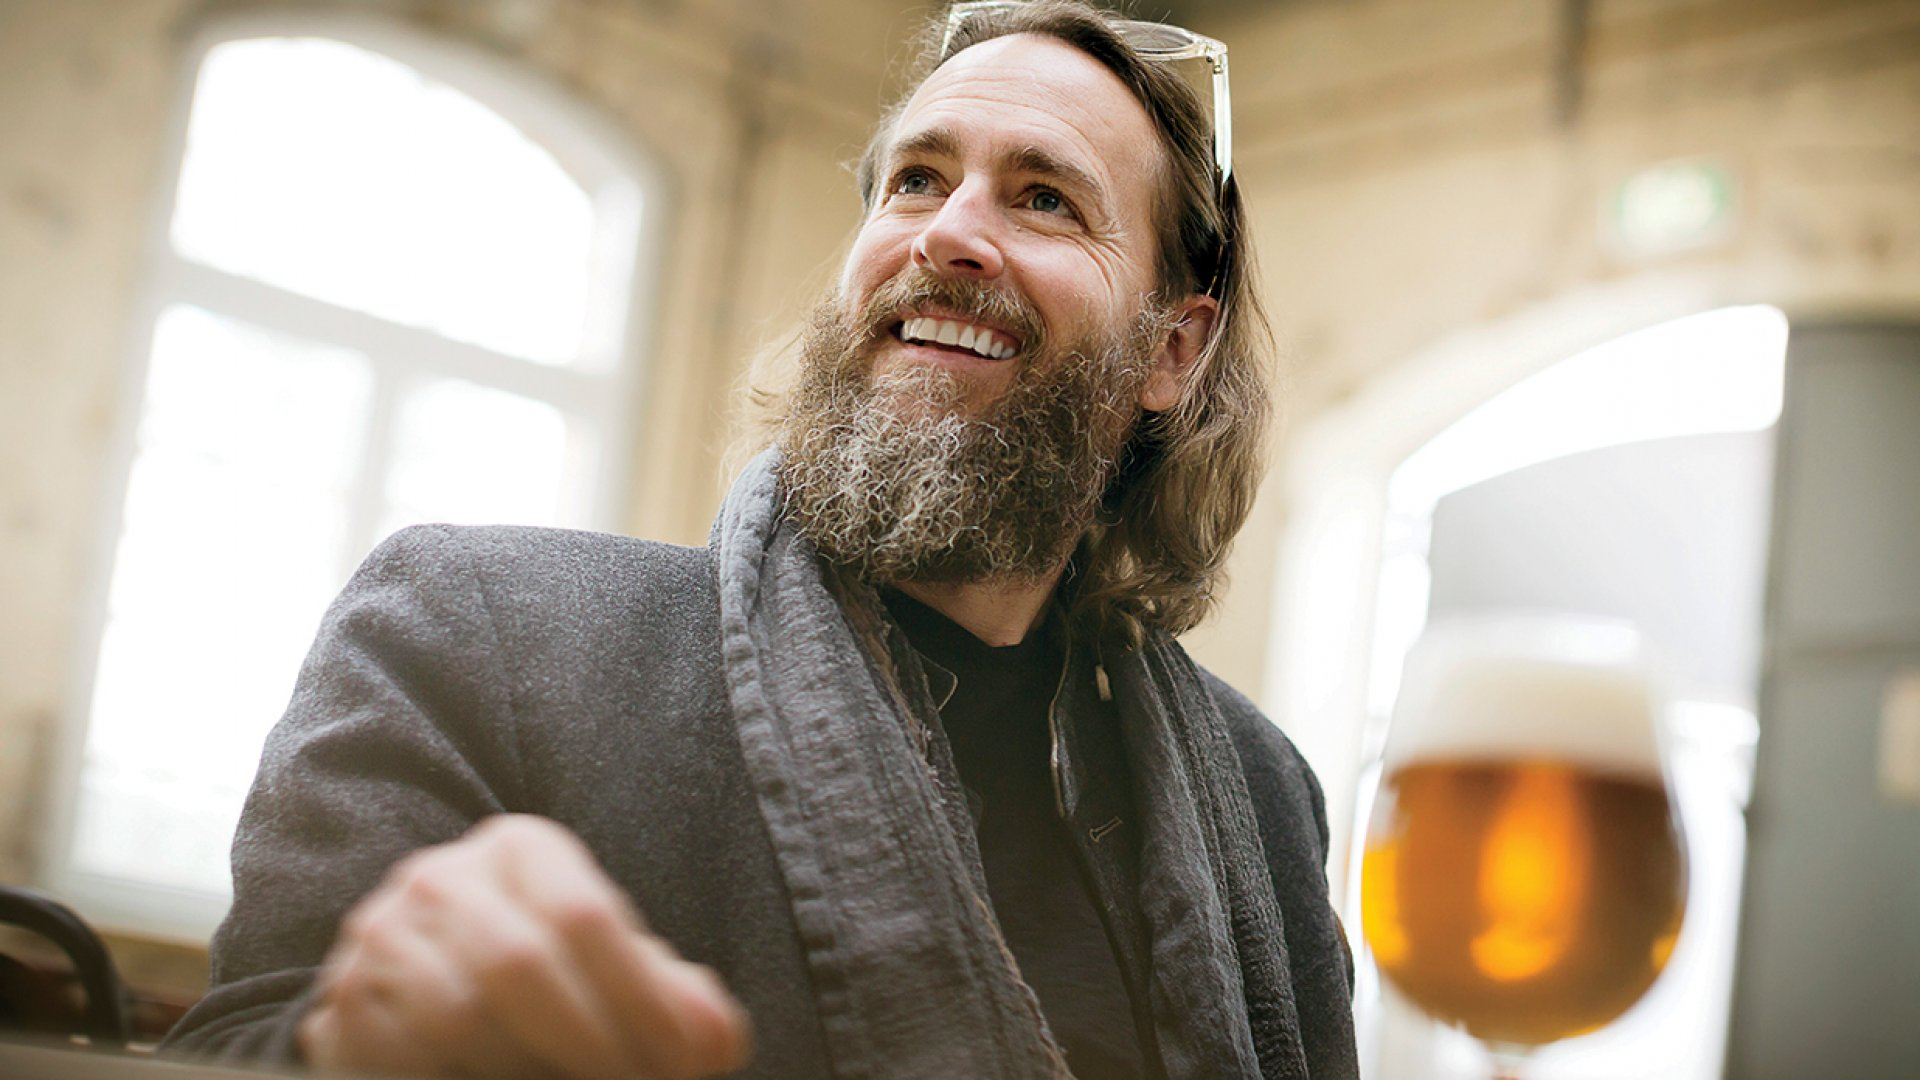 Greg Koch, who co-founded Stone Brewing in 1996 with Steve Wagner. The following year, the two started selling the revolutionary Arrogant Bastard Ale, which helped change the world of beer forever.